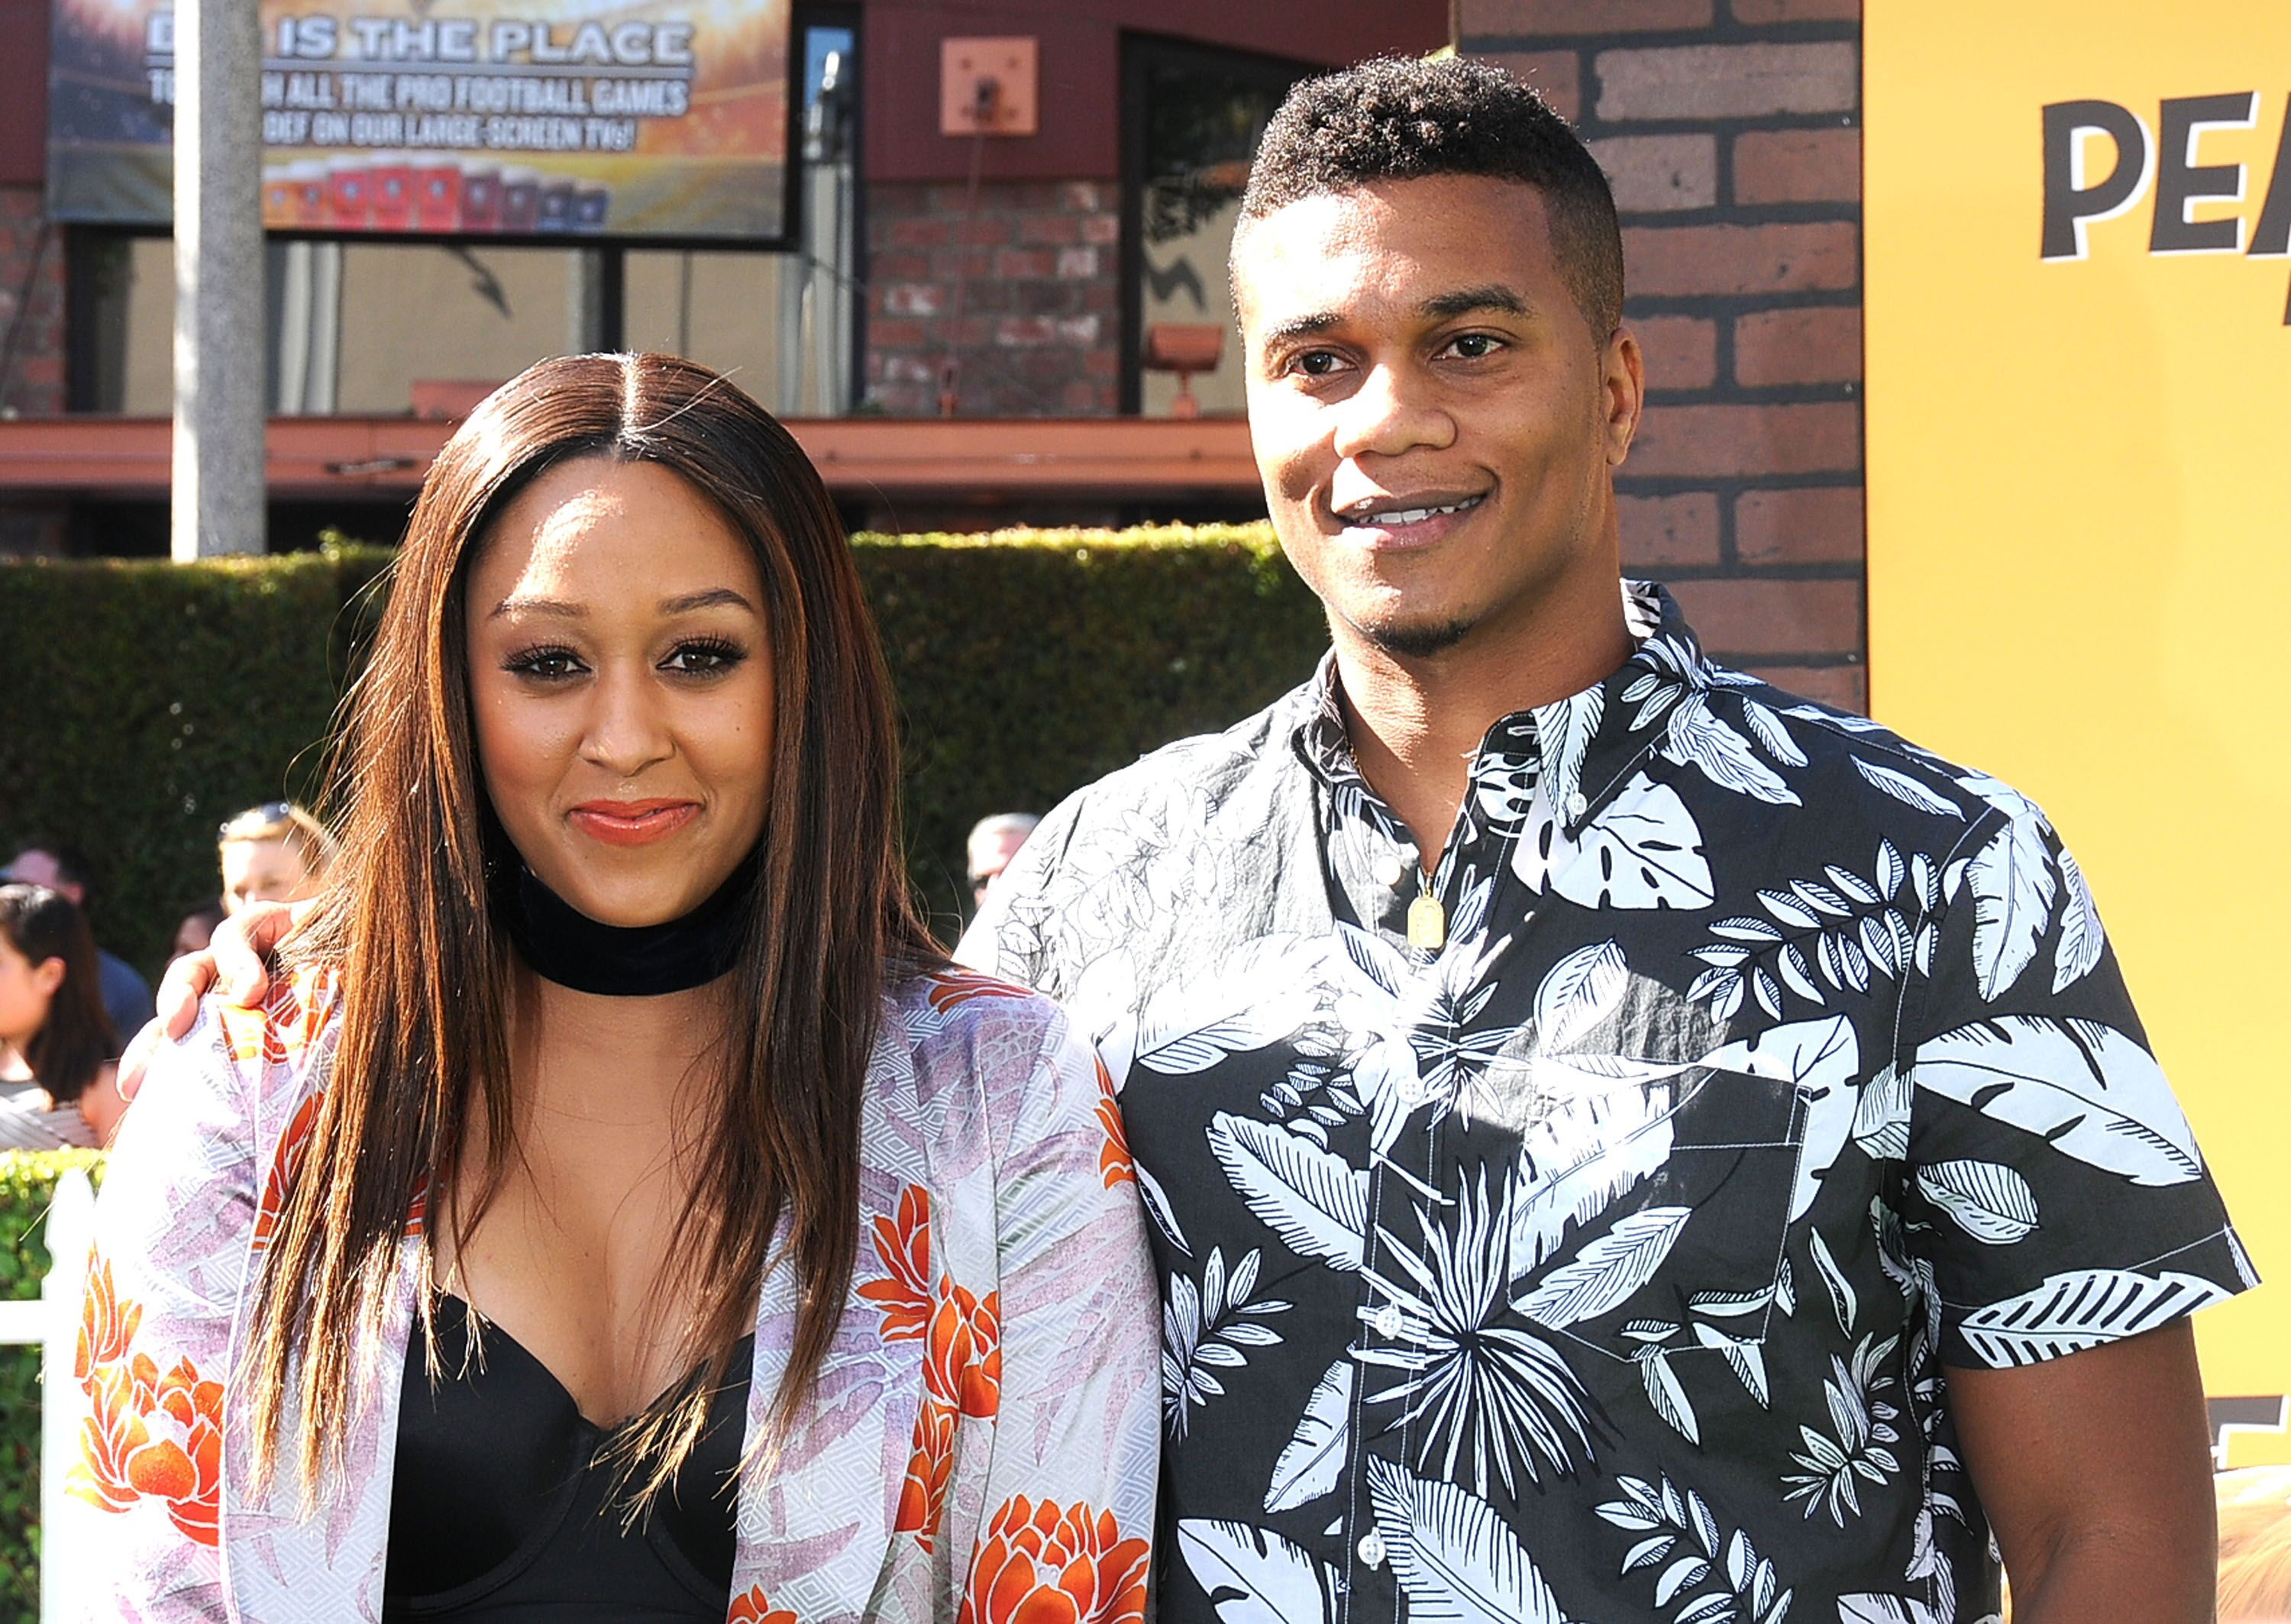 Tia Mowry and Cory Hardrict at the Regency Village Theatre on November 1, 2015 in Westwood, California. | Source: Getty Images